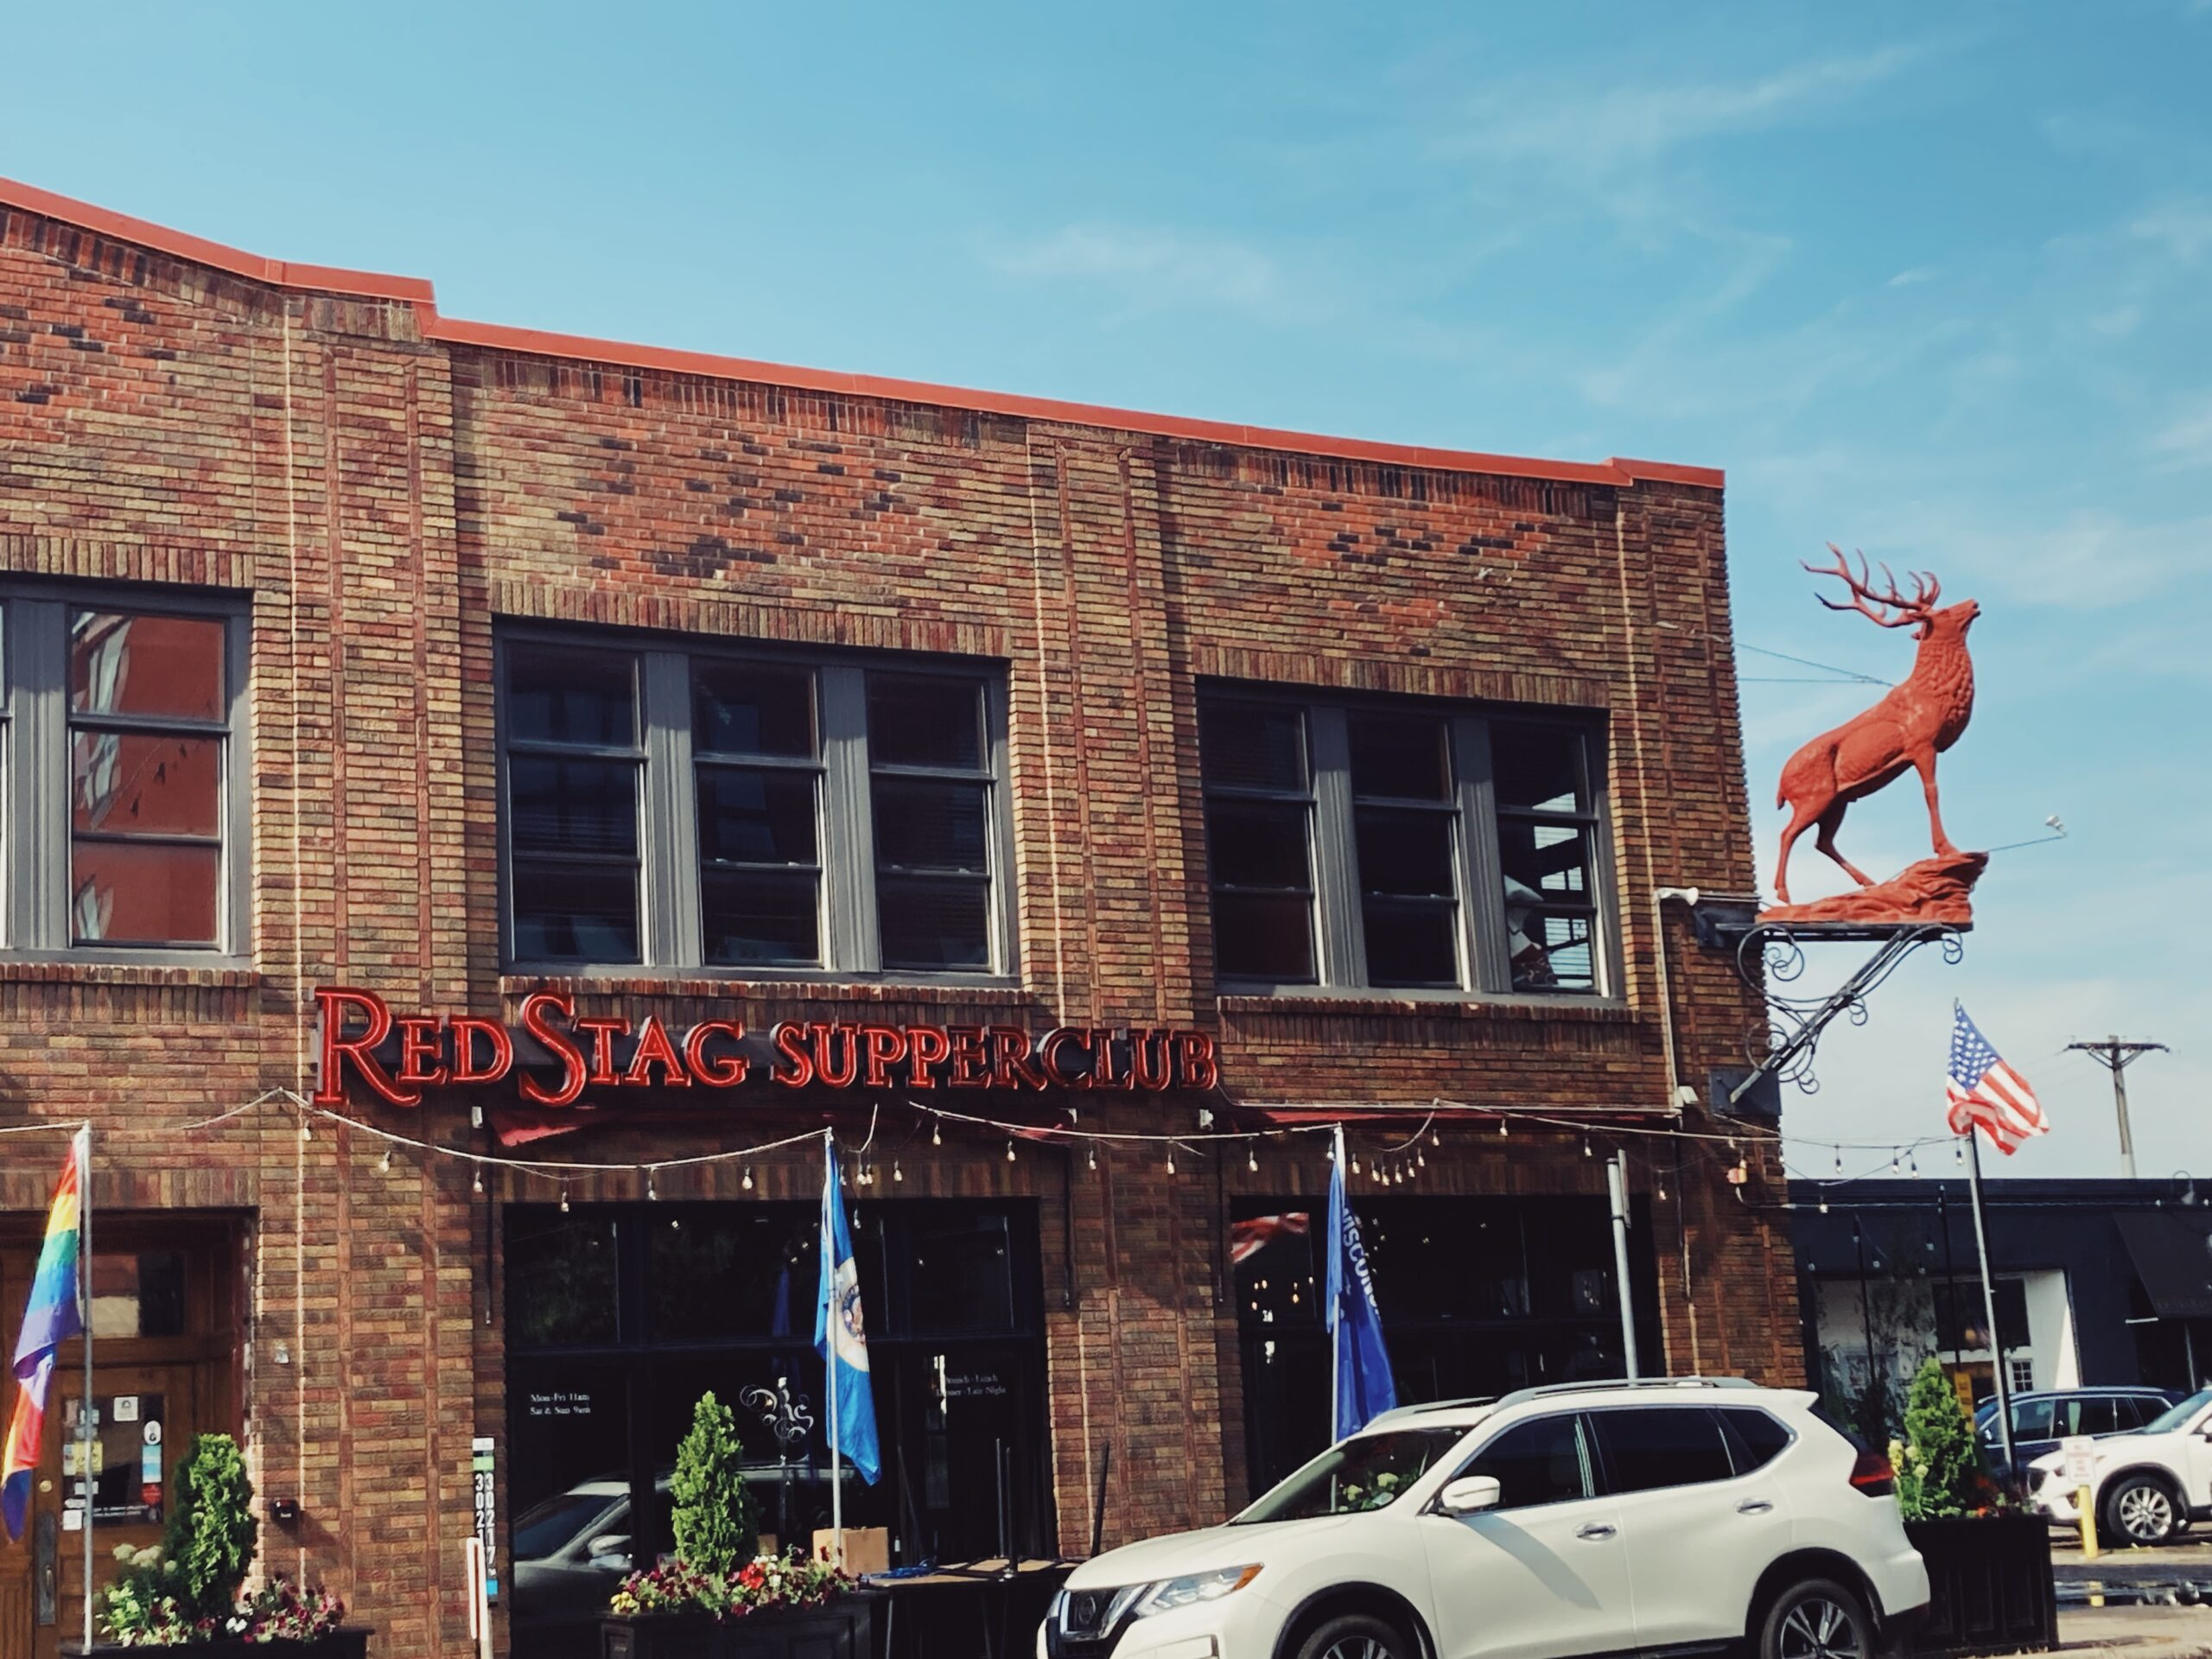 the storefront of the Red Stag Supperclub during the daytime. which has its name in big red letters and a big red stag mannequin hanging off the corner of the brick building